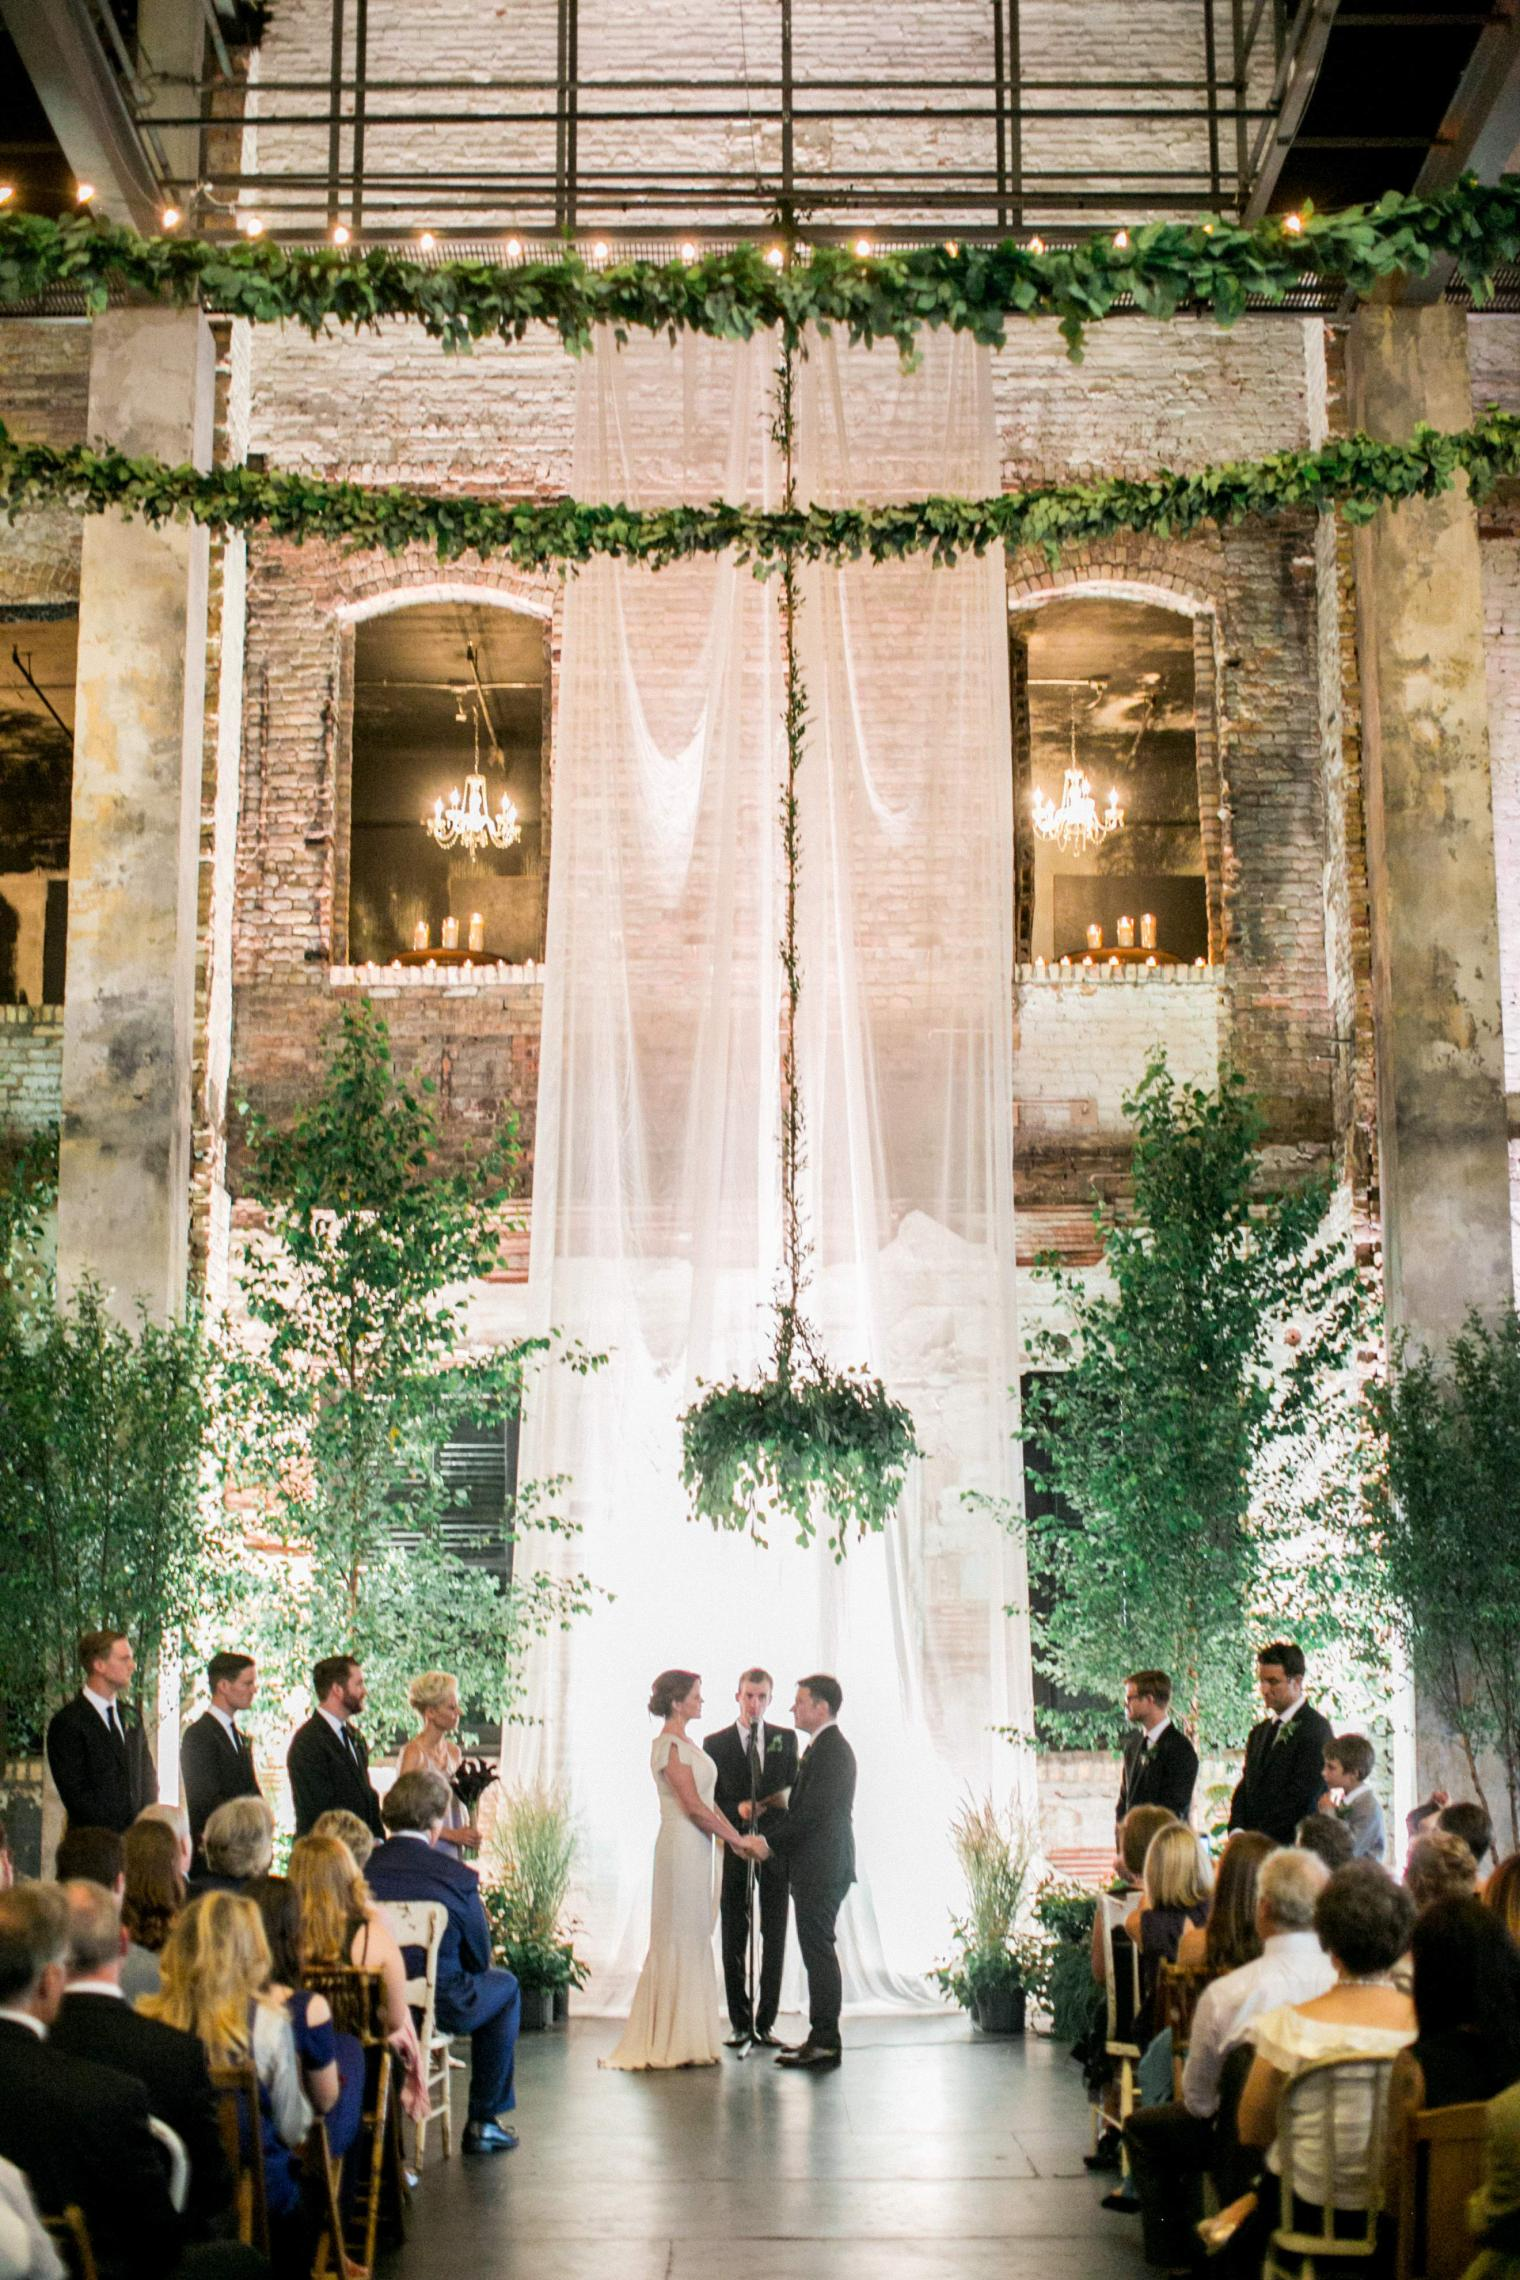 Rain Or Shine These Wedding Venues Have You Covered